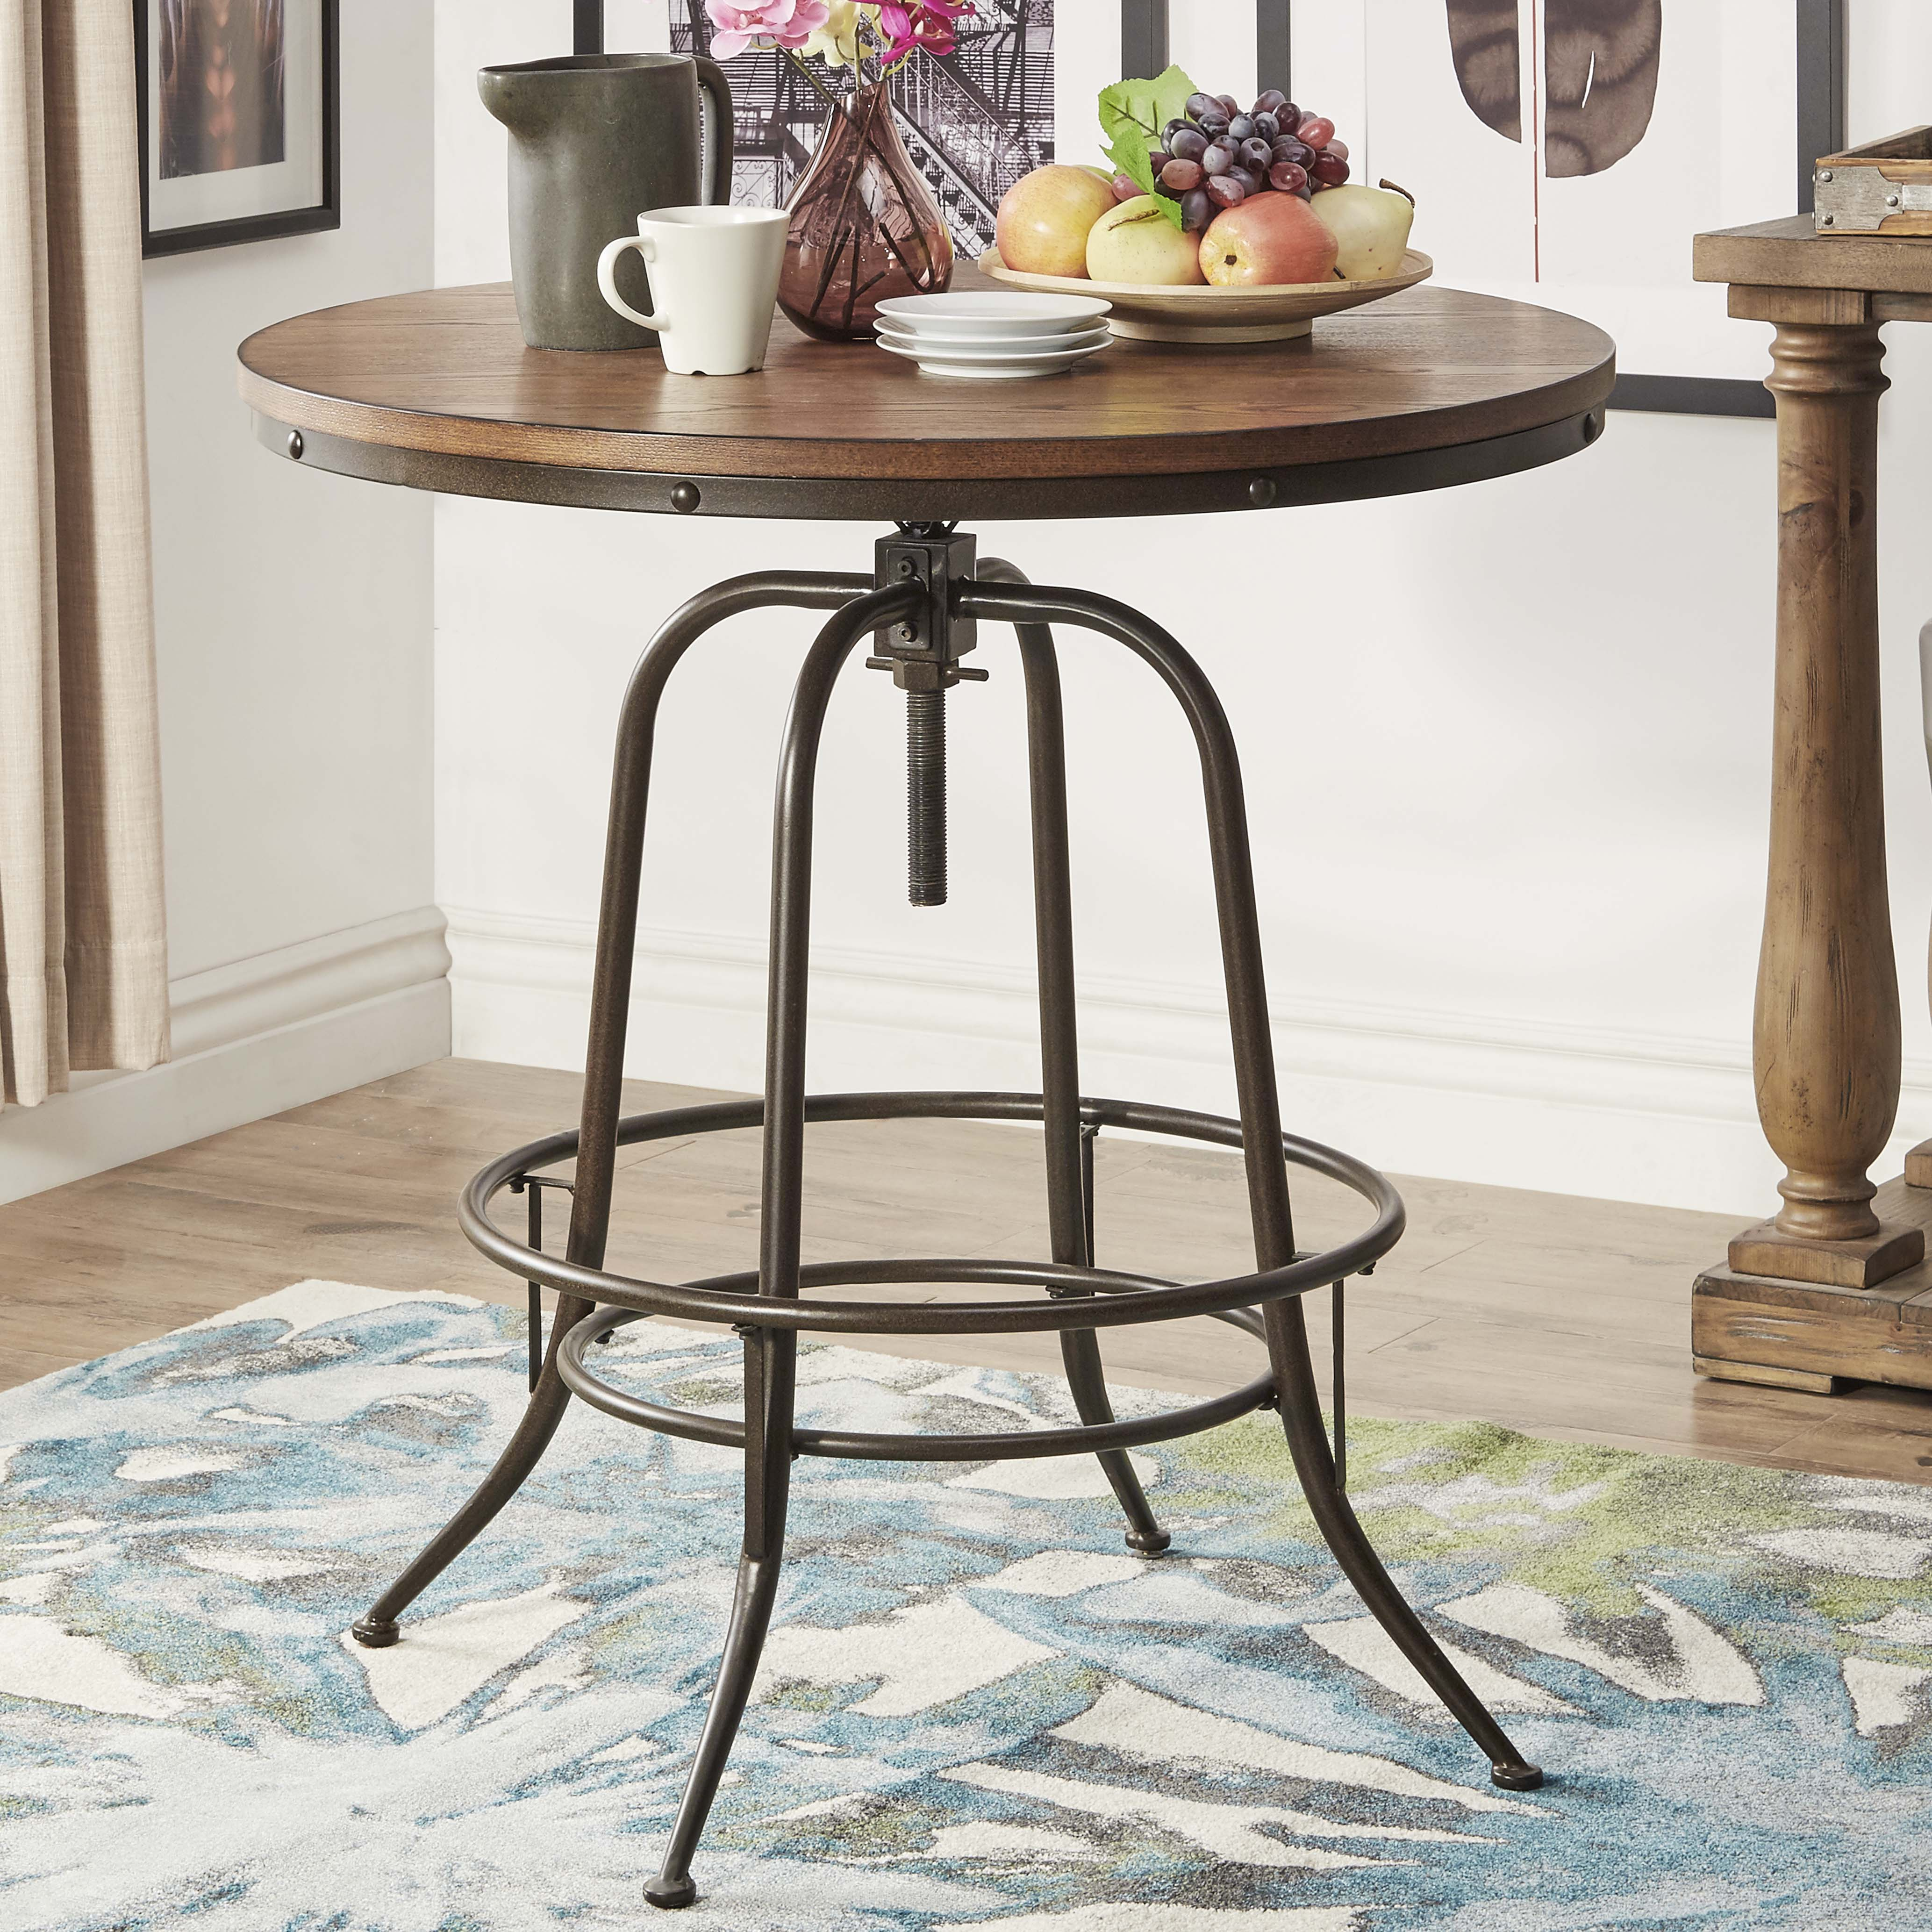 Weston Home Clayton Round Counter Height Table